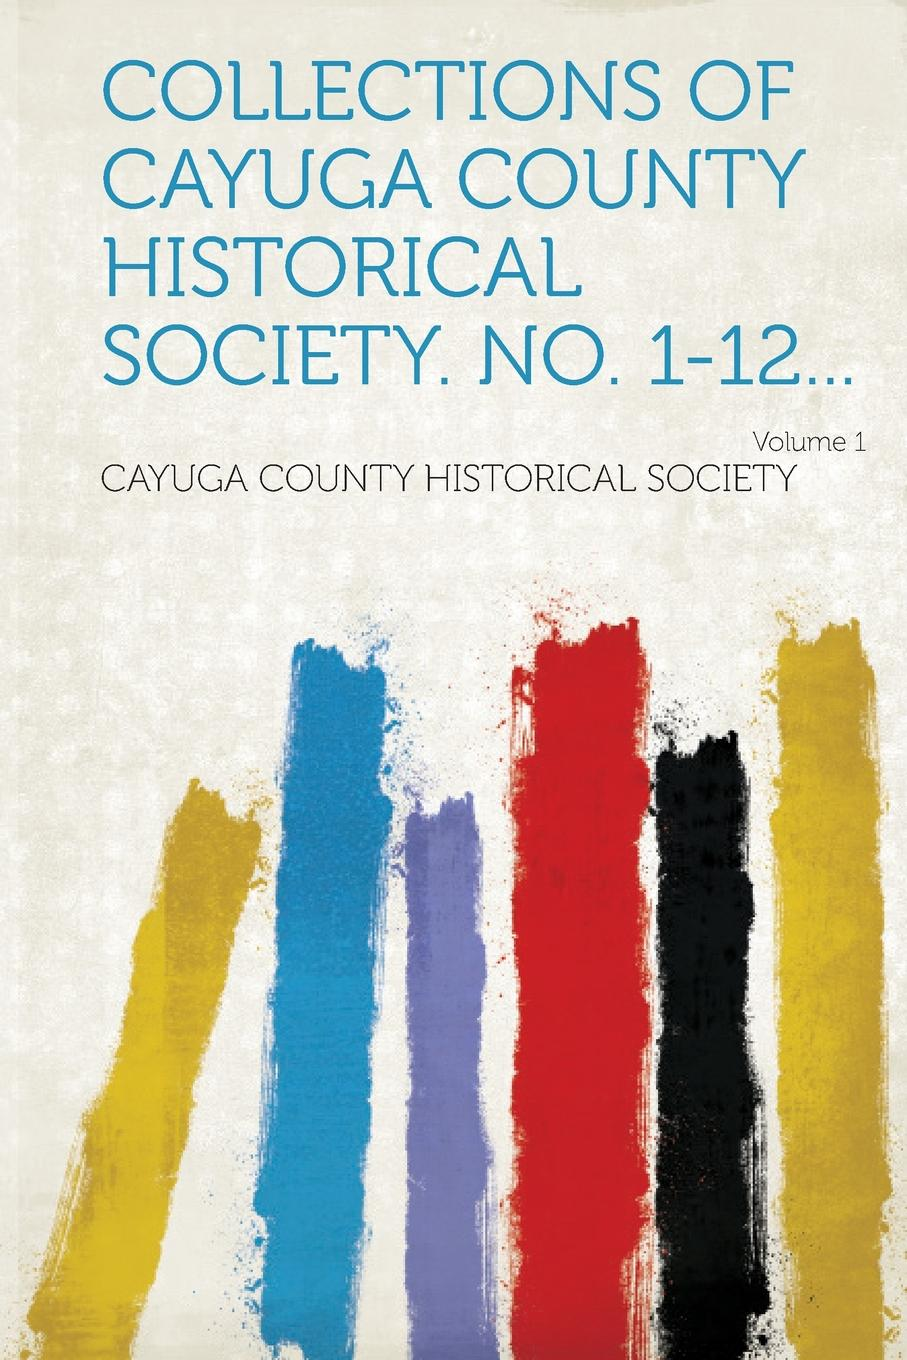 Collections of Cayuga County Historical Society. No. 1-12... Volume 1